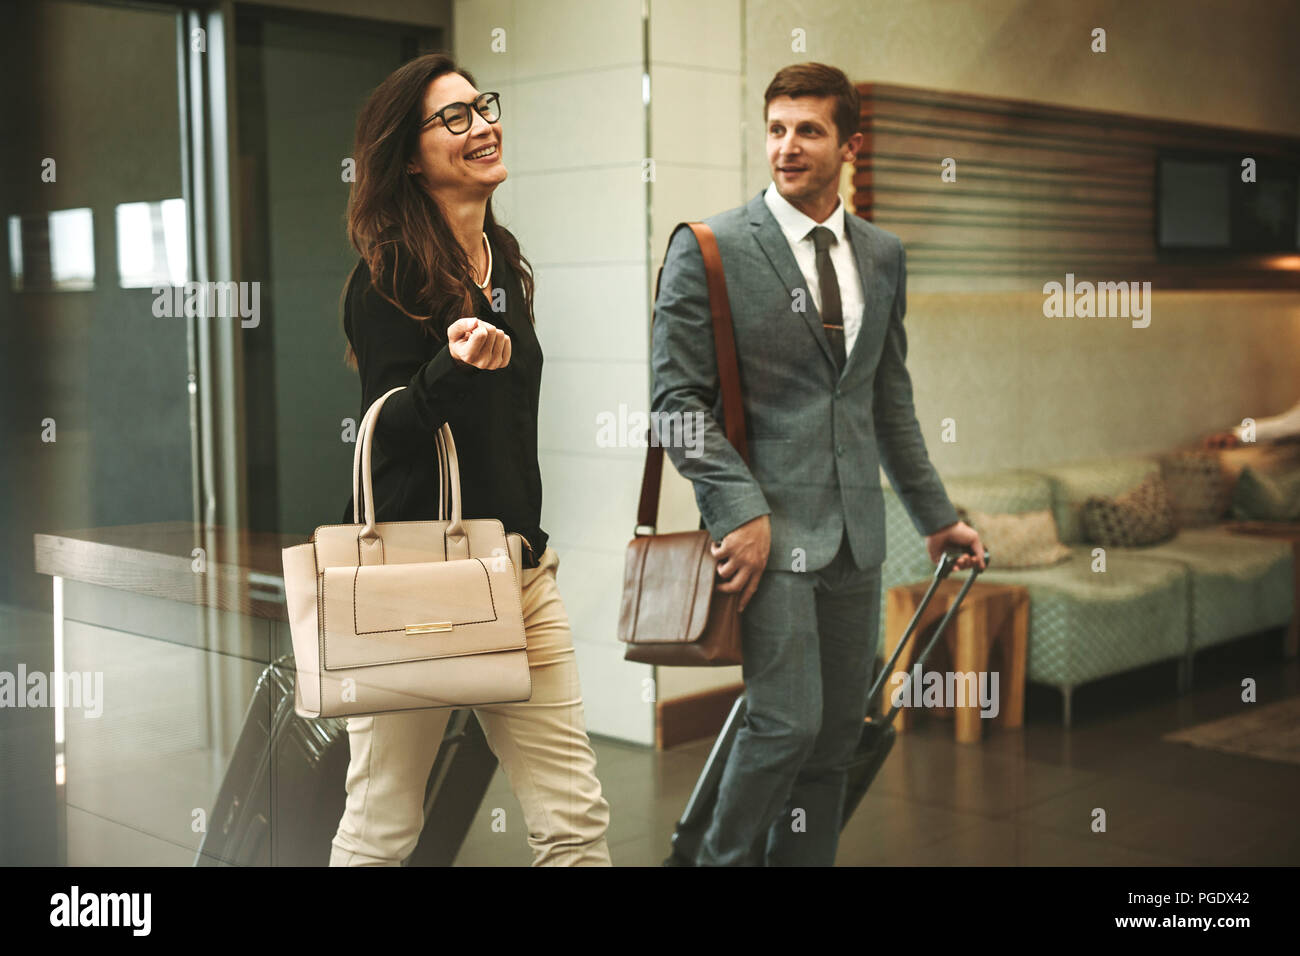 Two business travelers walking through airport lobby with their luggage and having a friendly chat. Businessman and businesswoman going on a business  - Stock Image